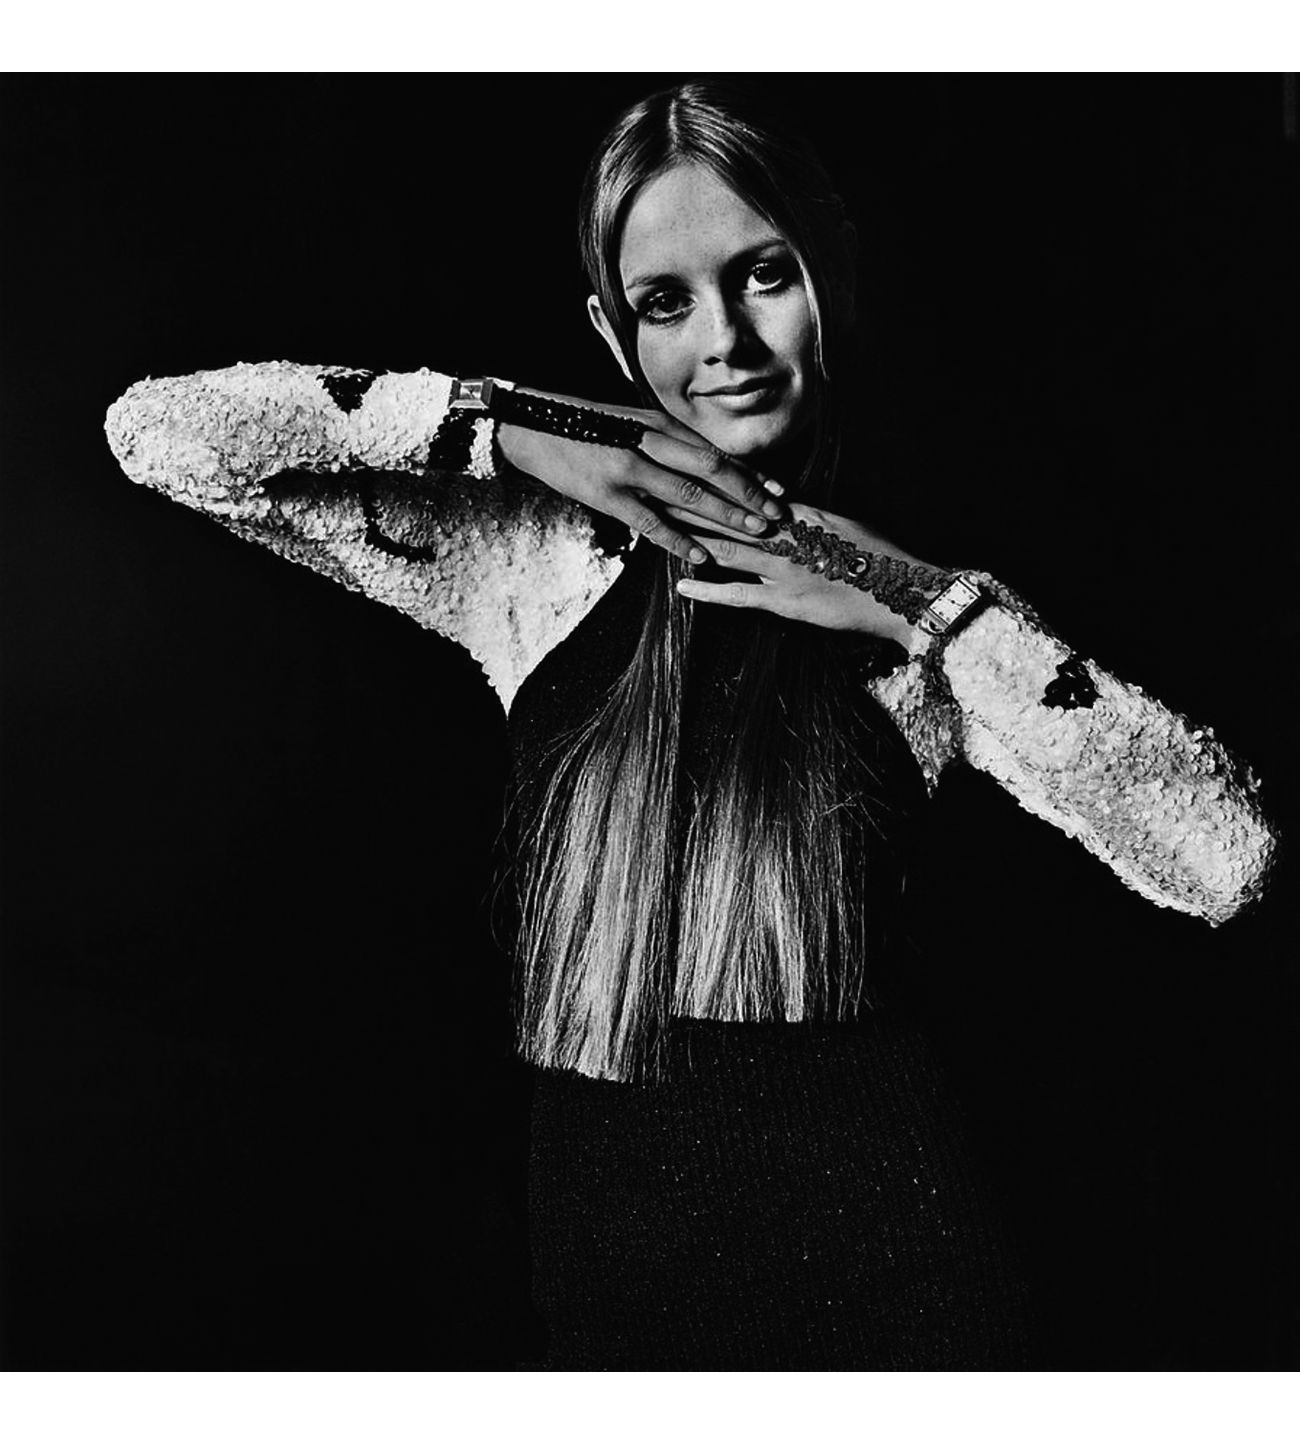 ace59548868a Twiggy wears a sequined jumpsuit by Gene Shelly for Boutique International   a black Hansen hand